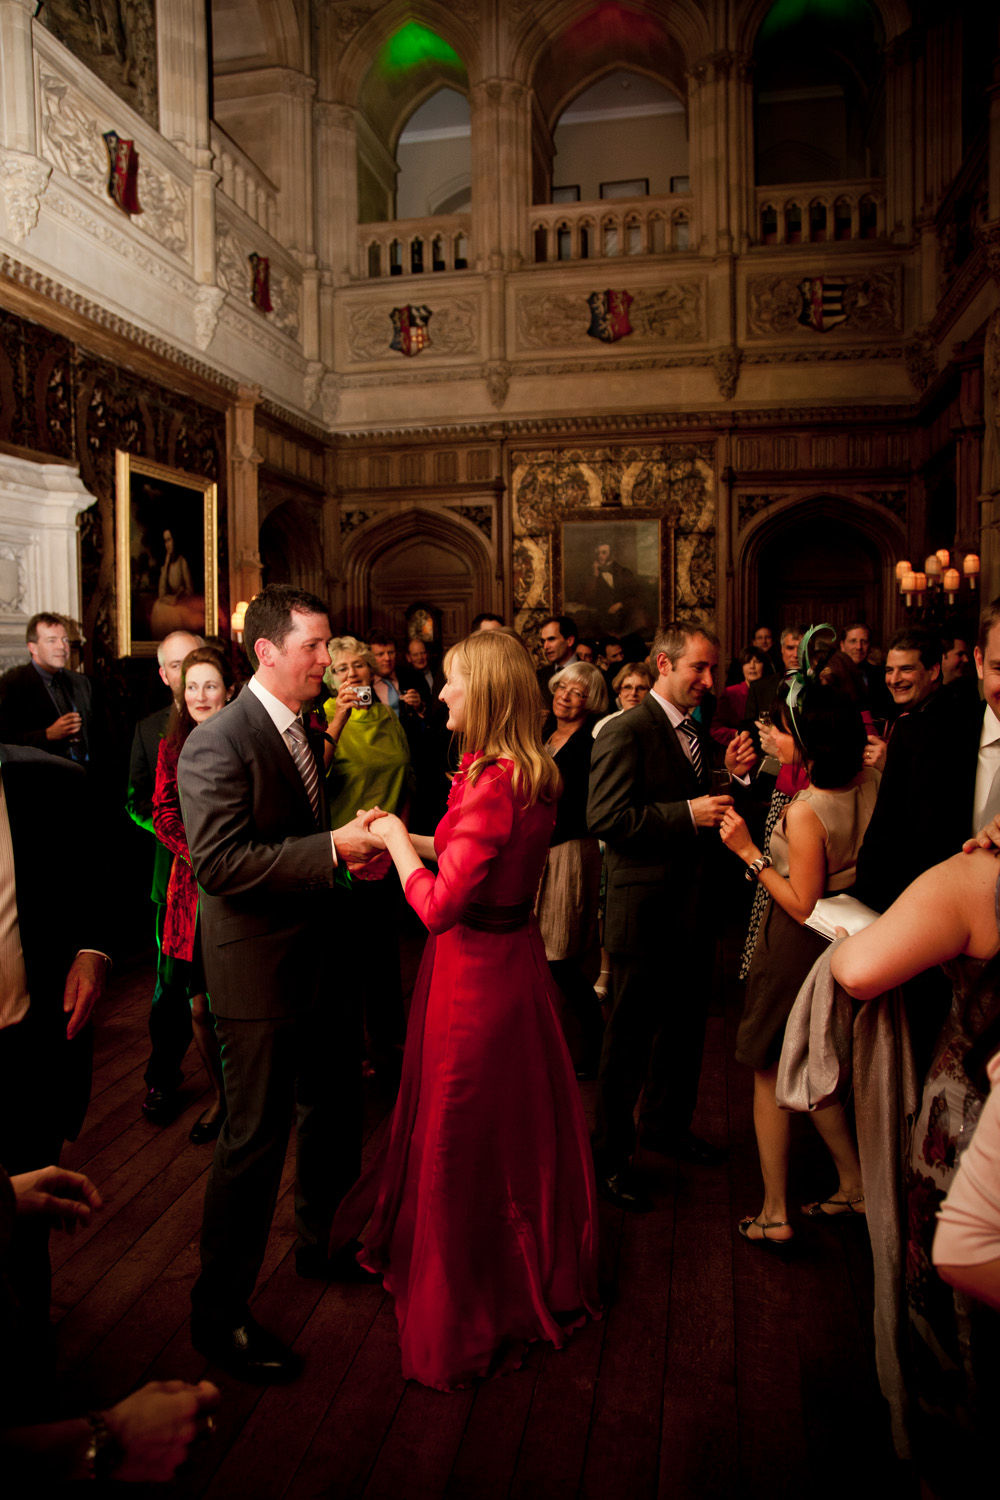 Highclere_Castle_Wedding_Photographer_Newbury_Berkshire_048.jpg